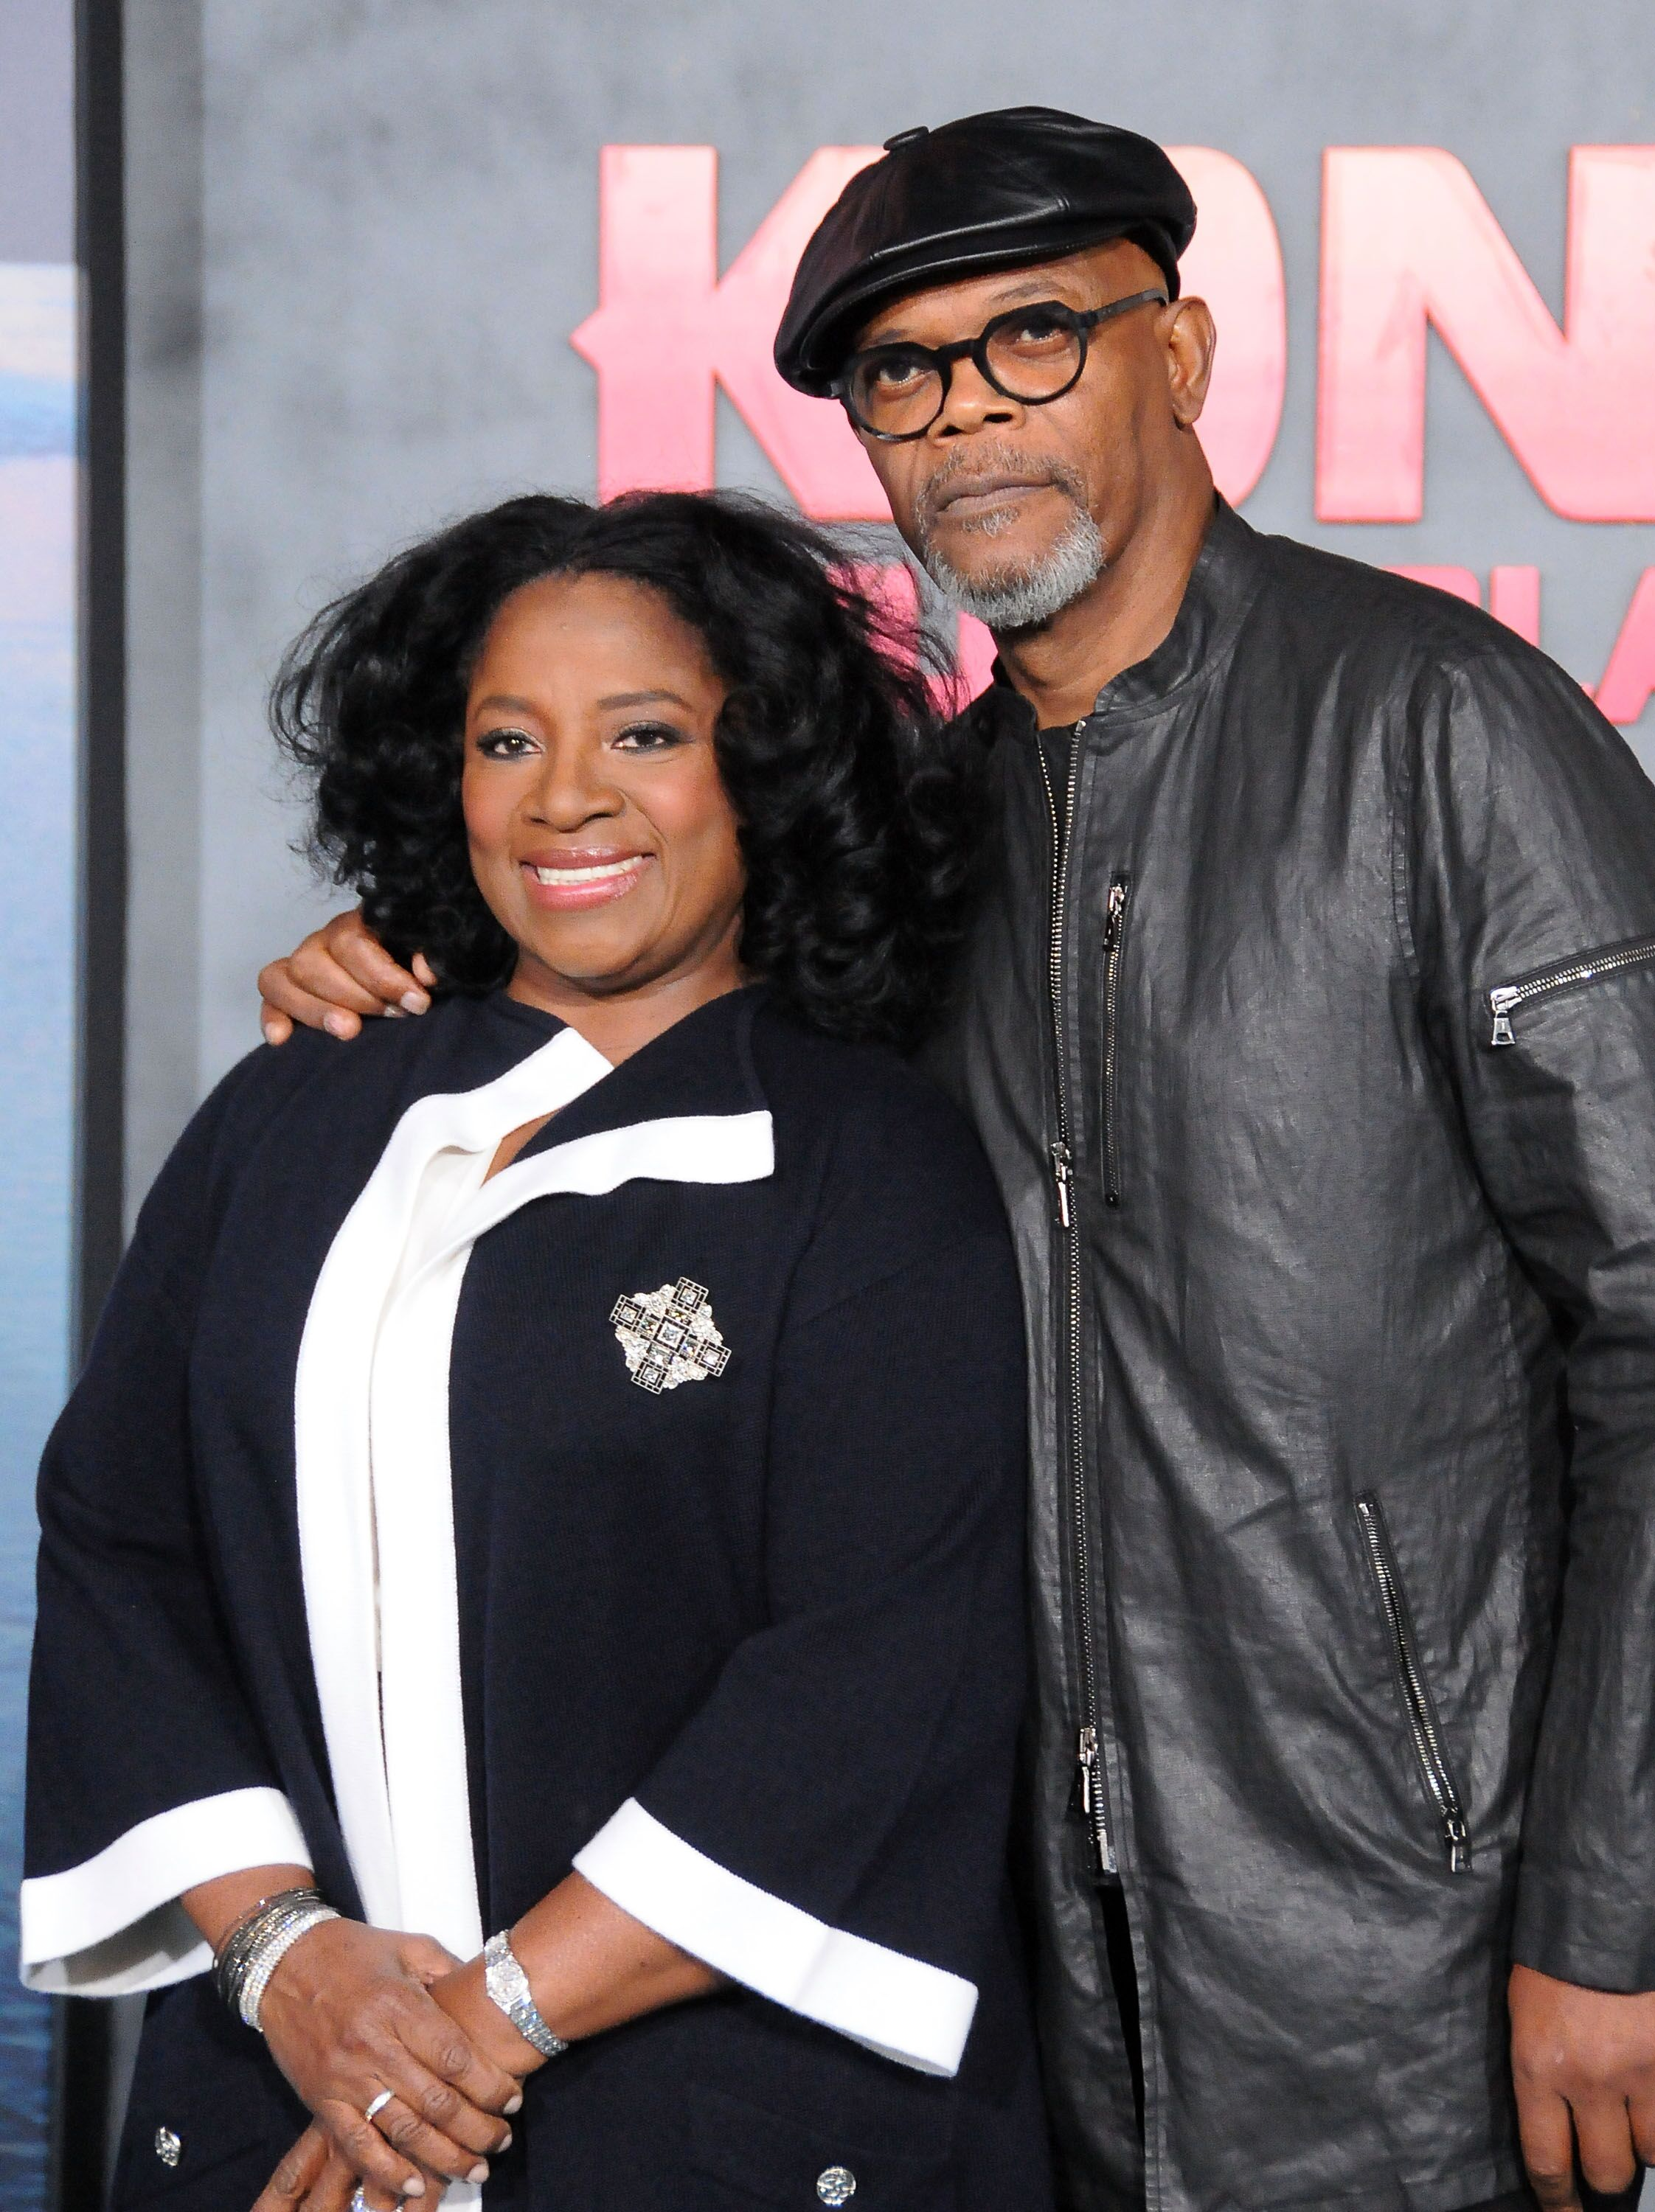 Samuel L. Jackson (R) and wife LaTanya Richardson (L) arrive for the Premiere of Warner Bros. Pictures' 'Kong: Skull Island' at Dolby Theatre on March 8, 2017 in Hollywood, California | Photo: Getty Images